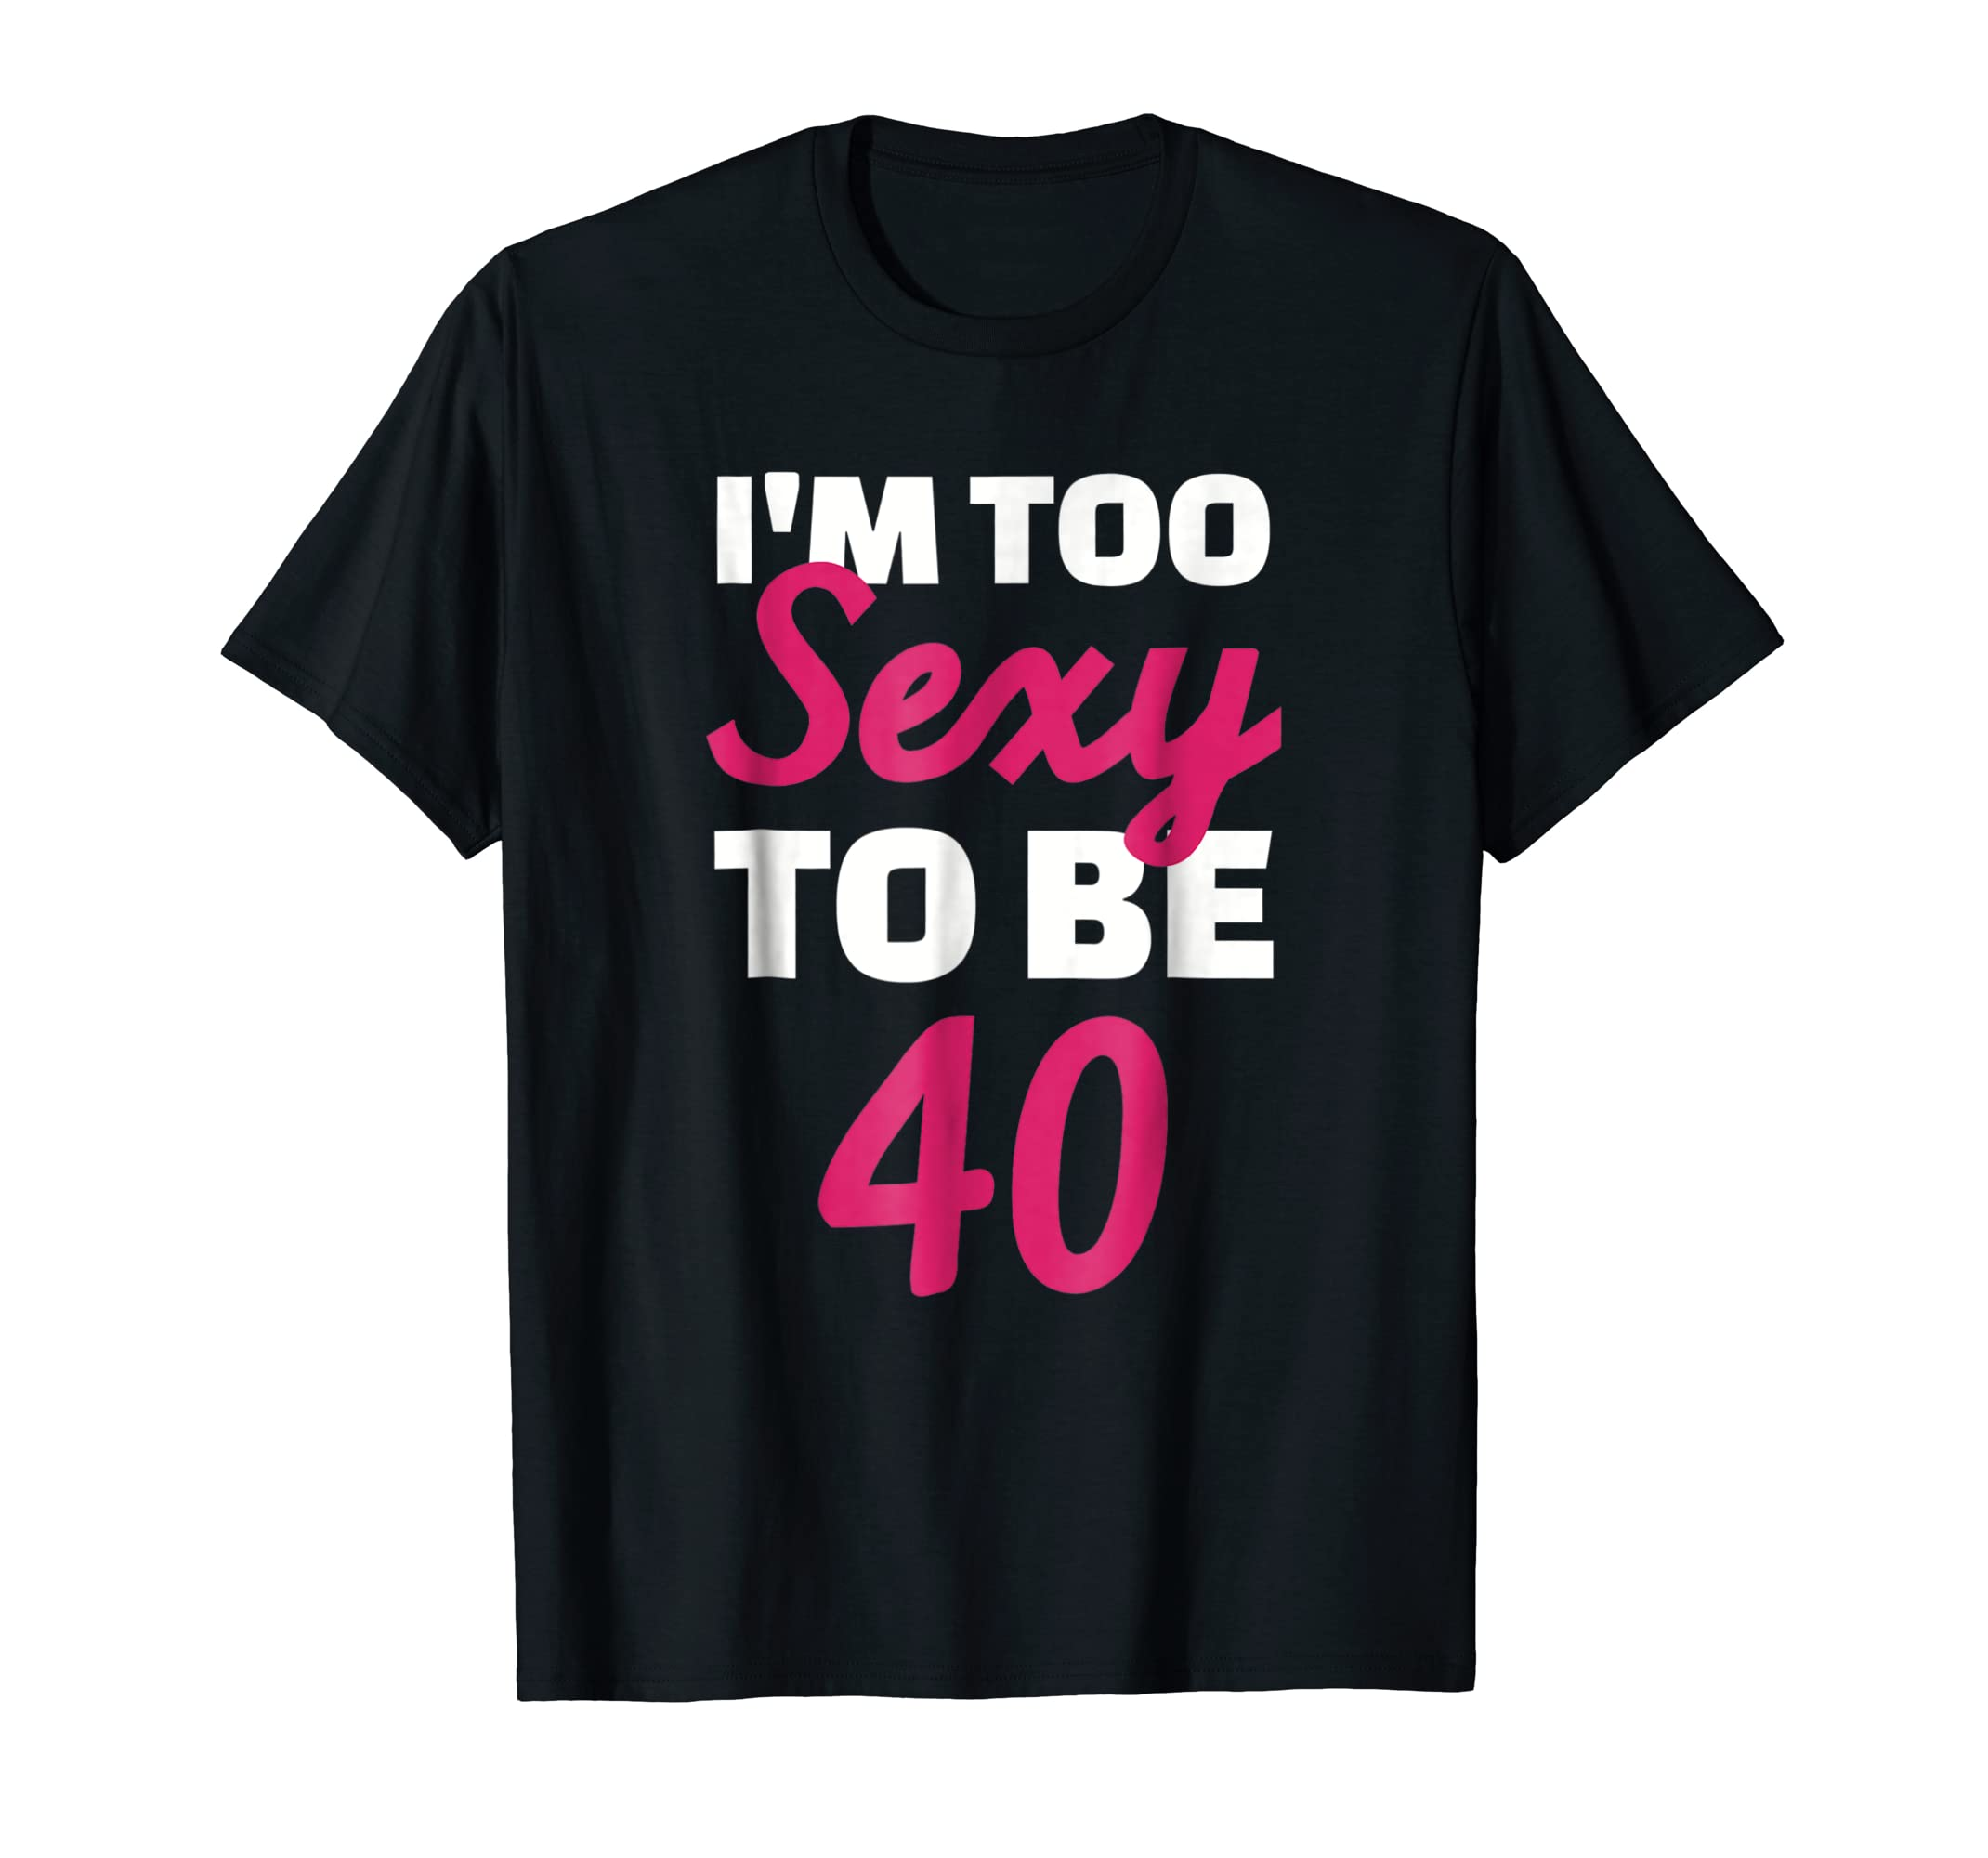 Amazon.com: I'm too sexy to be 40 years T-Shirt: Clothing